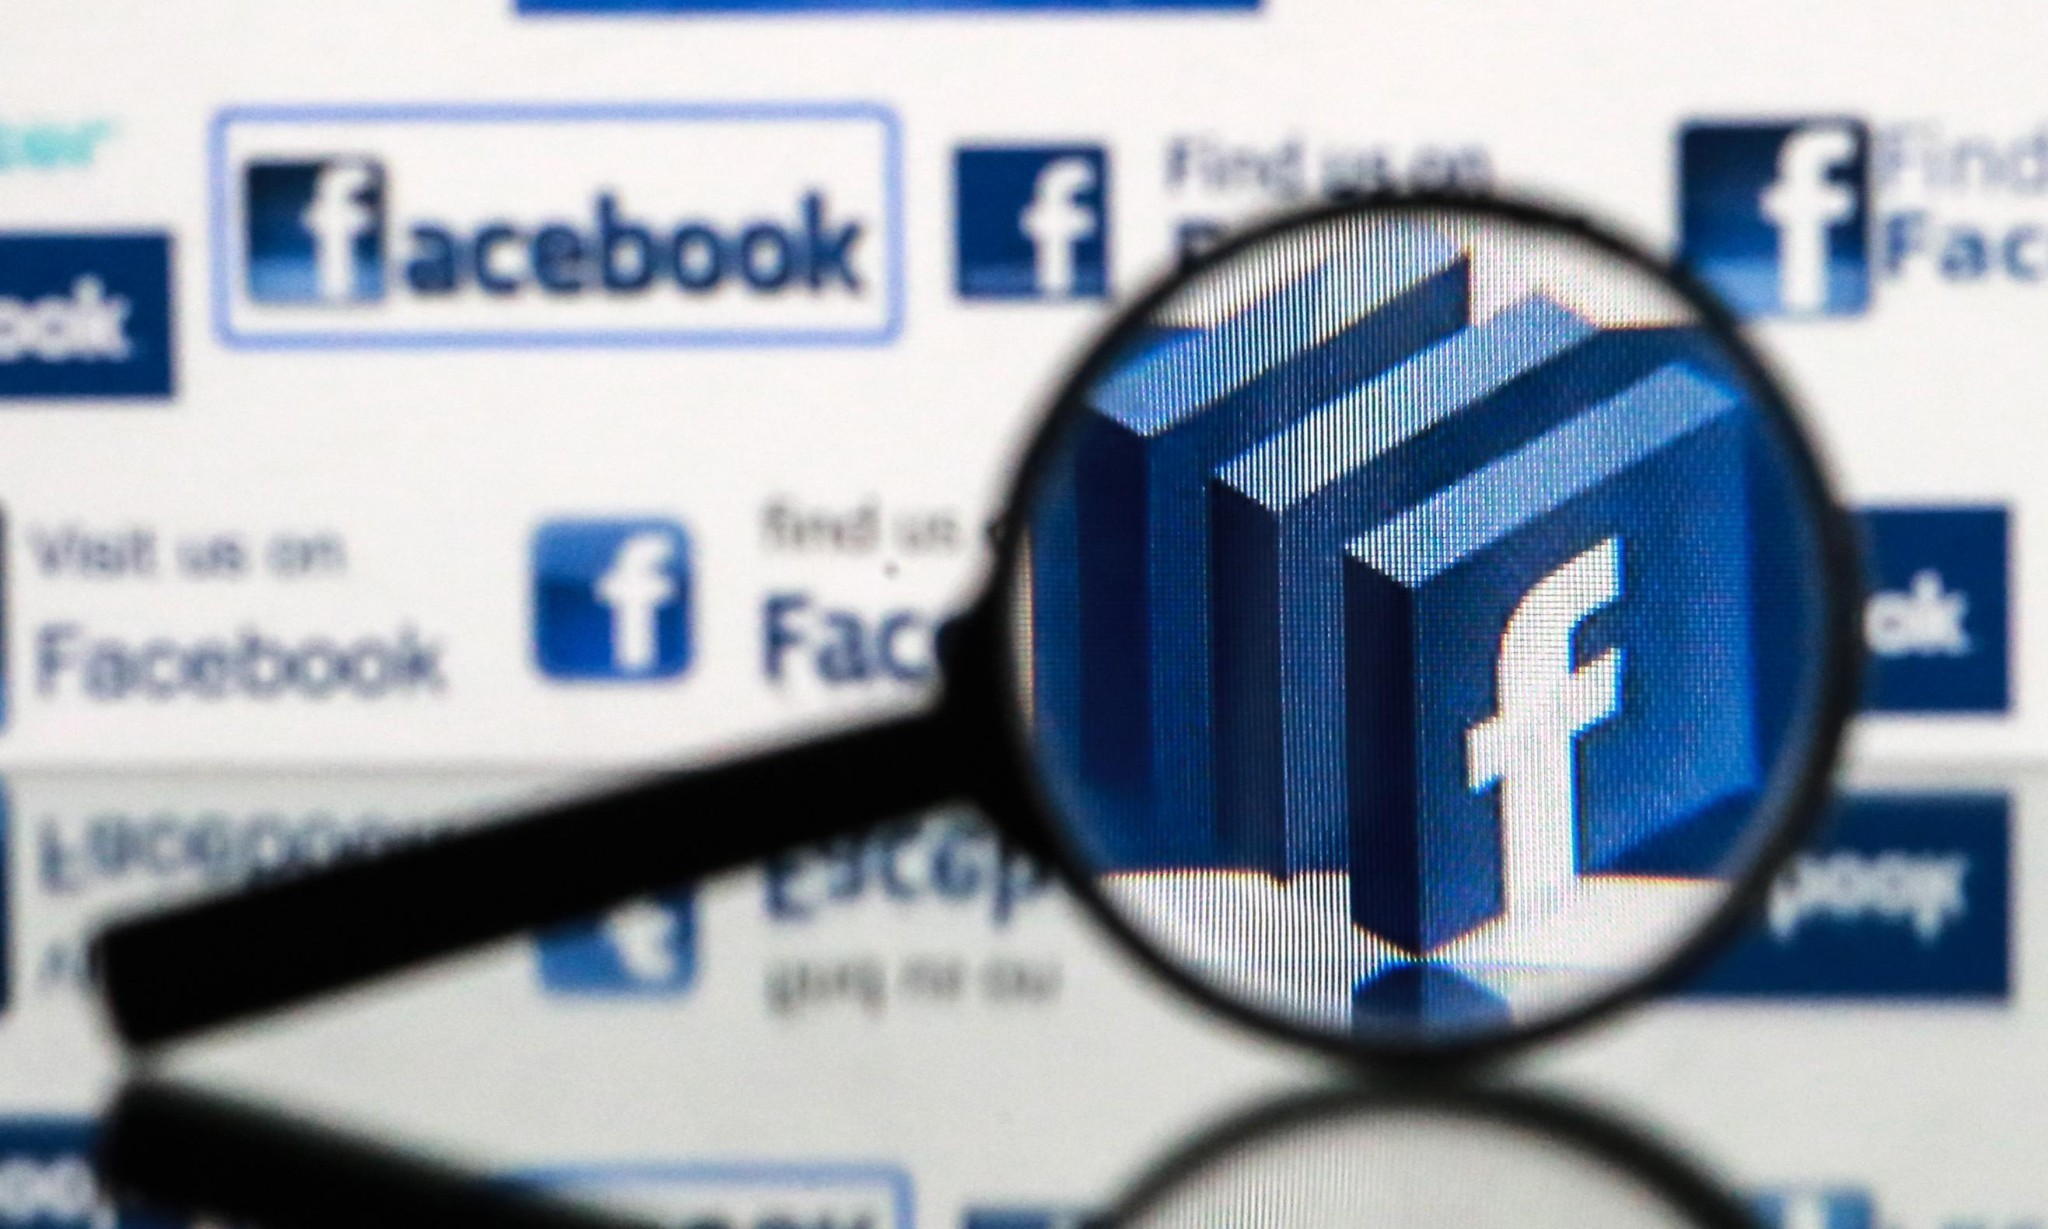 Facebook developed secret software to censor user posts in China, report says